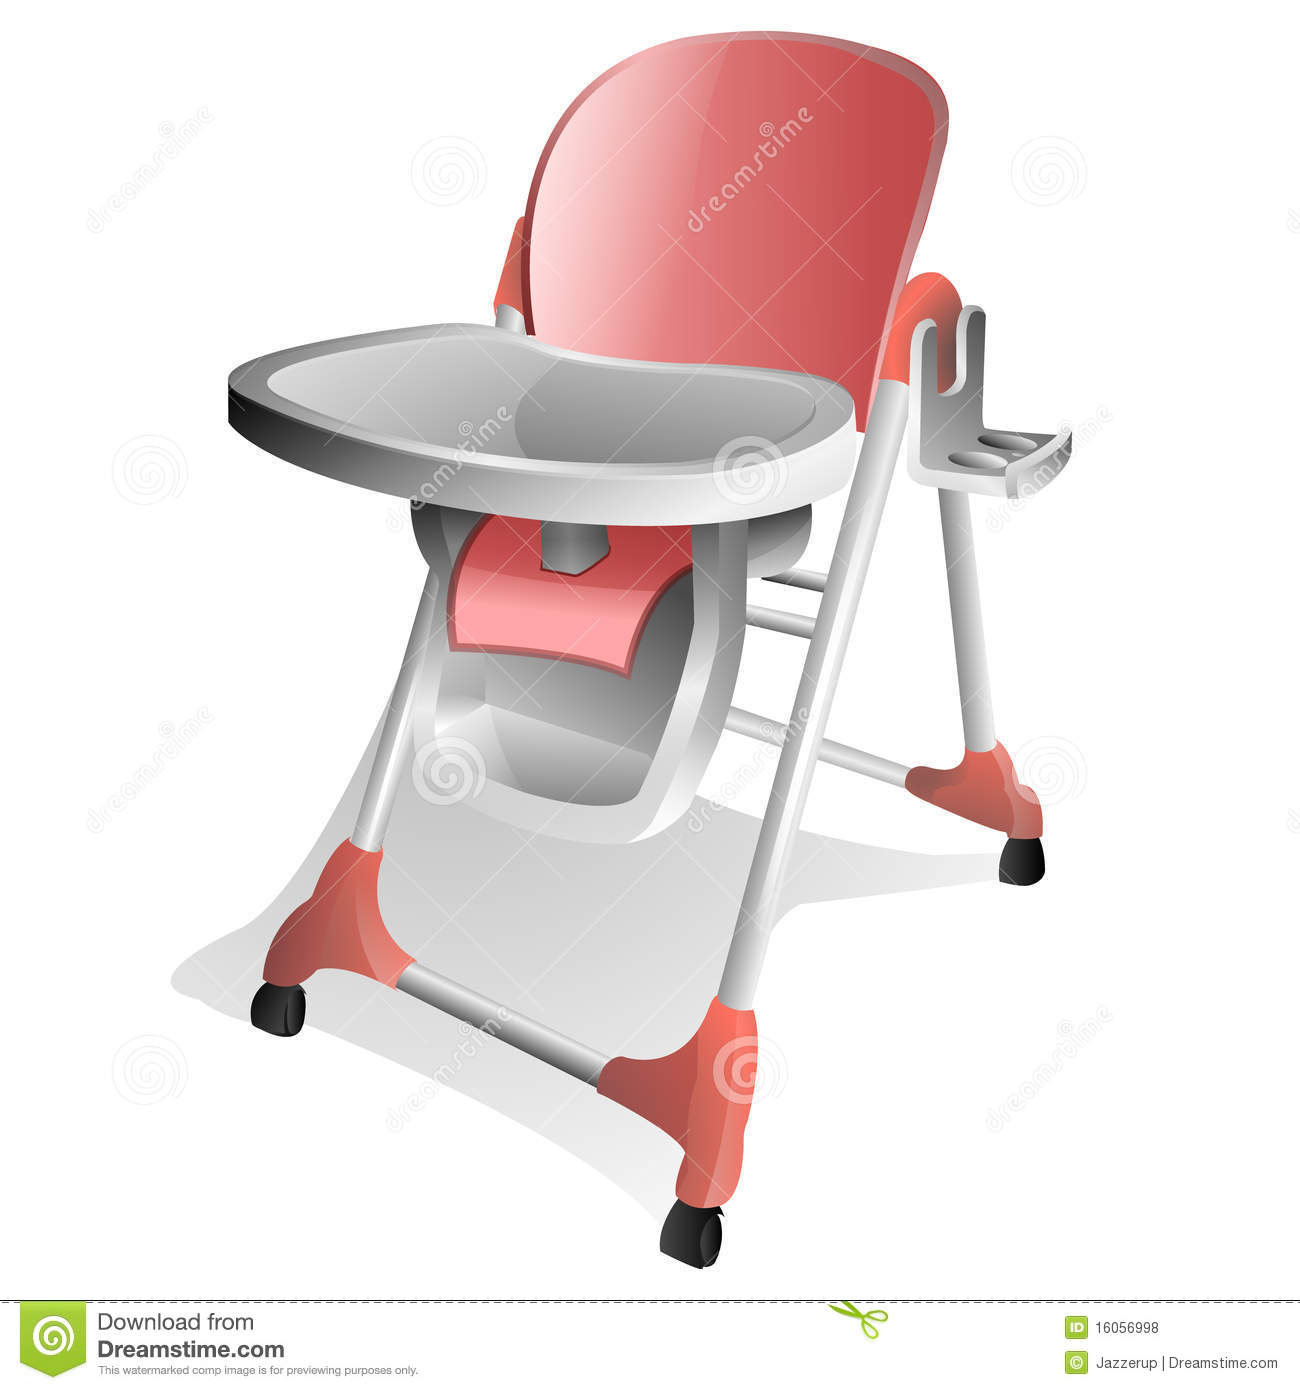 Egg Baby High Chair Baby High Chair Stock Illustration Illustration Of Furniture